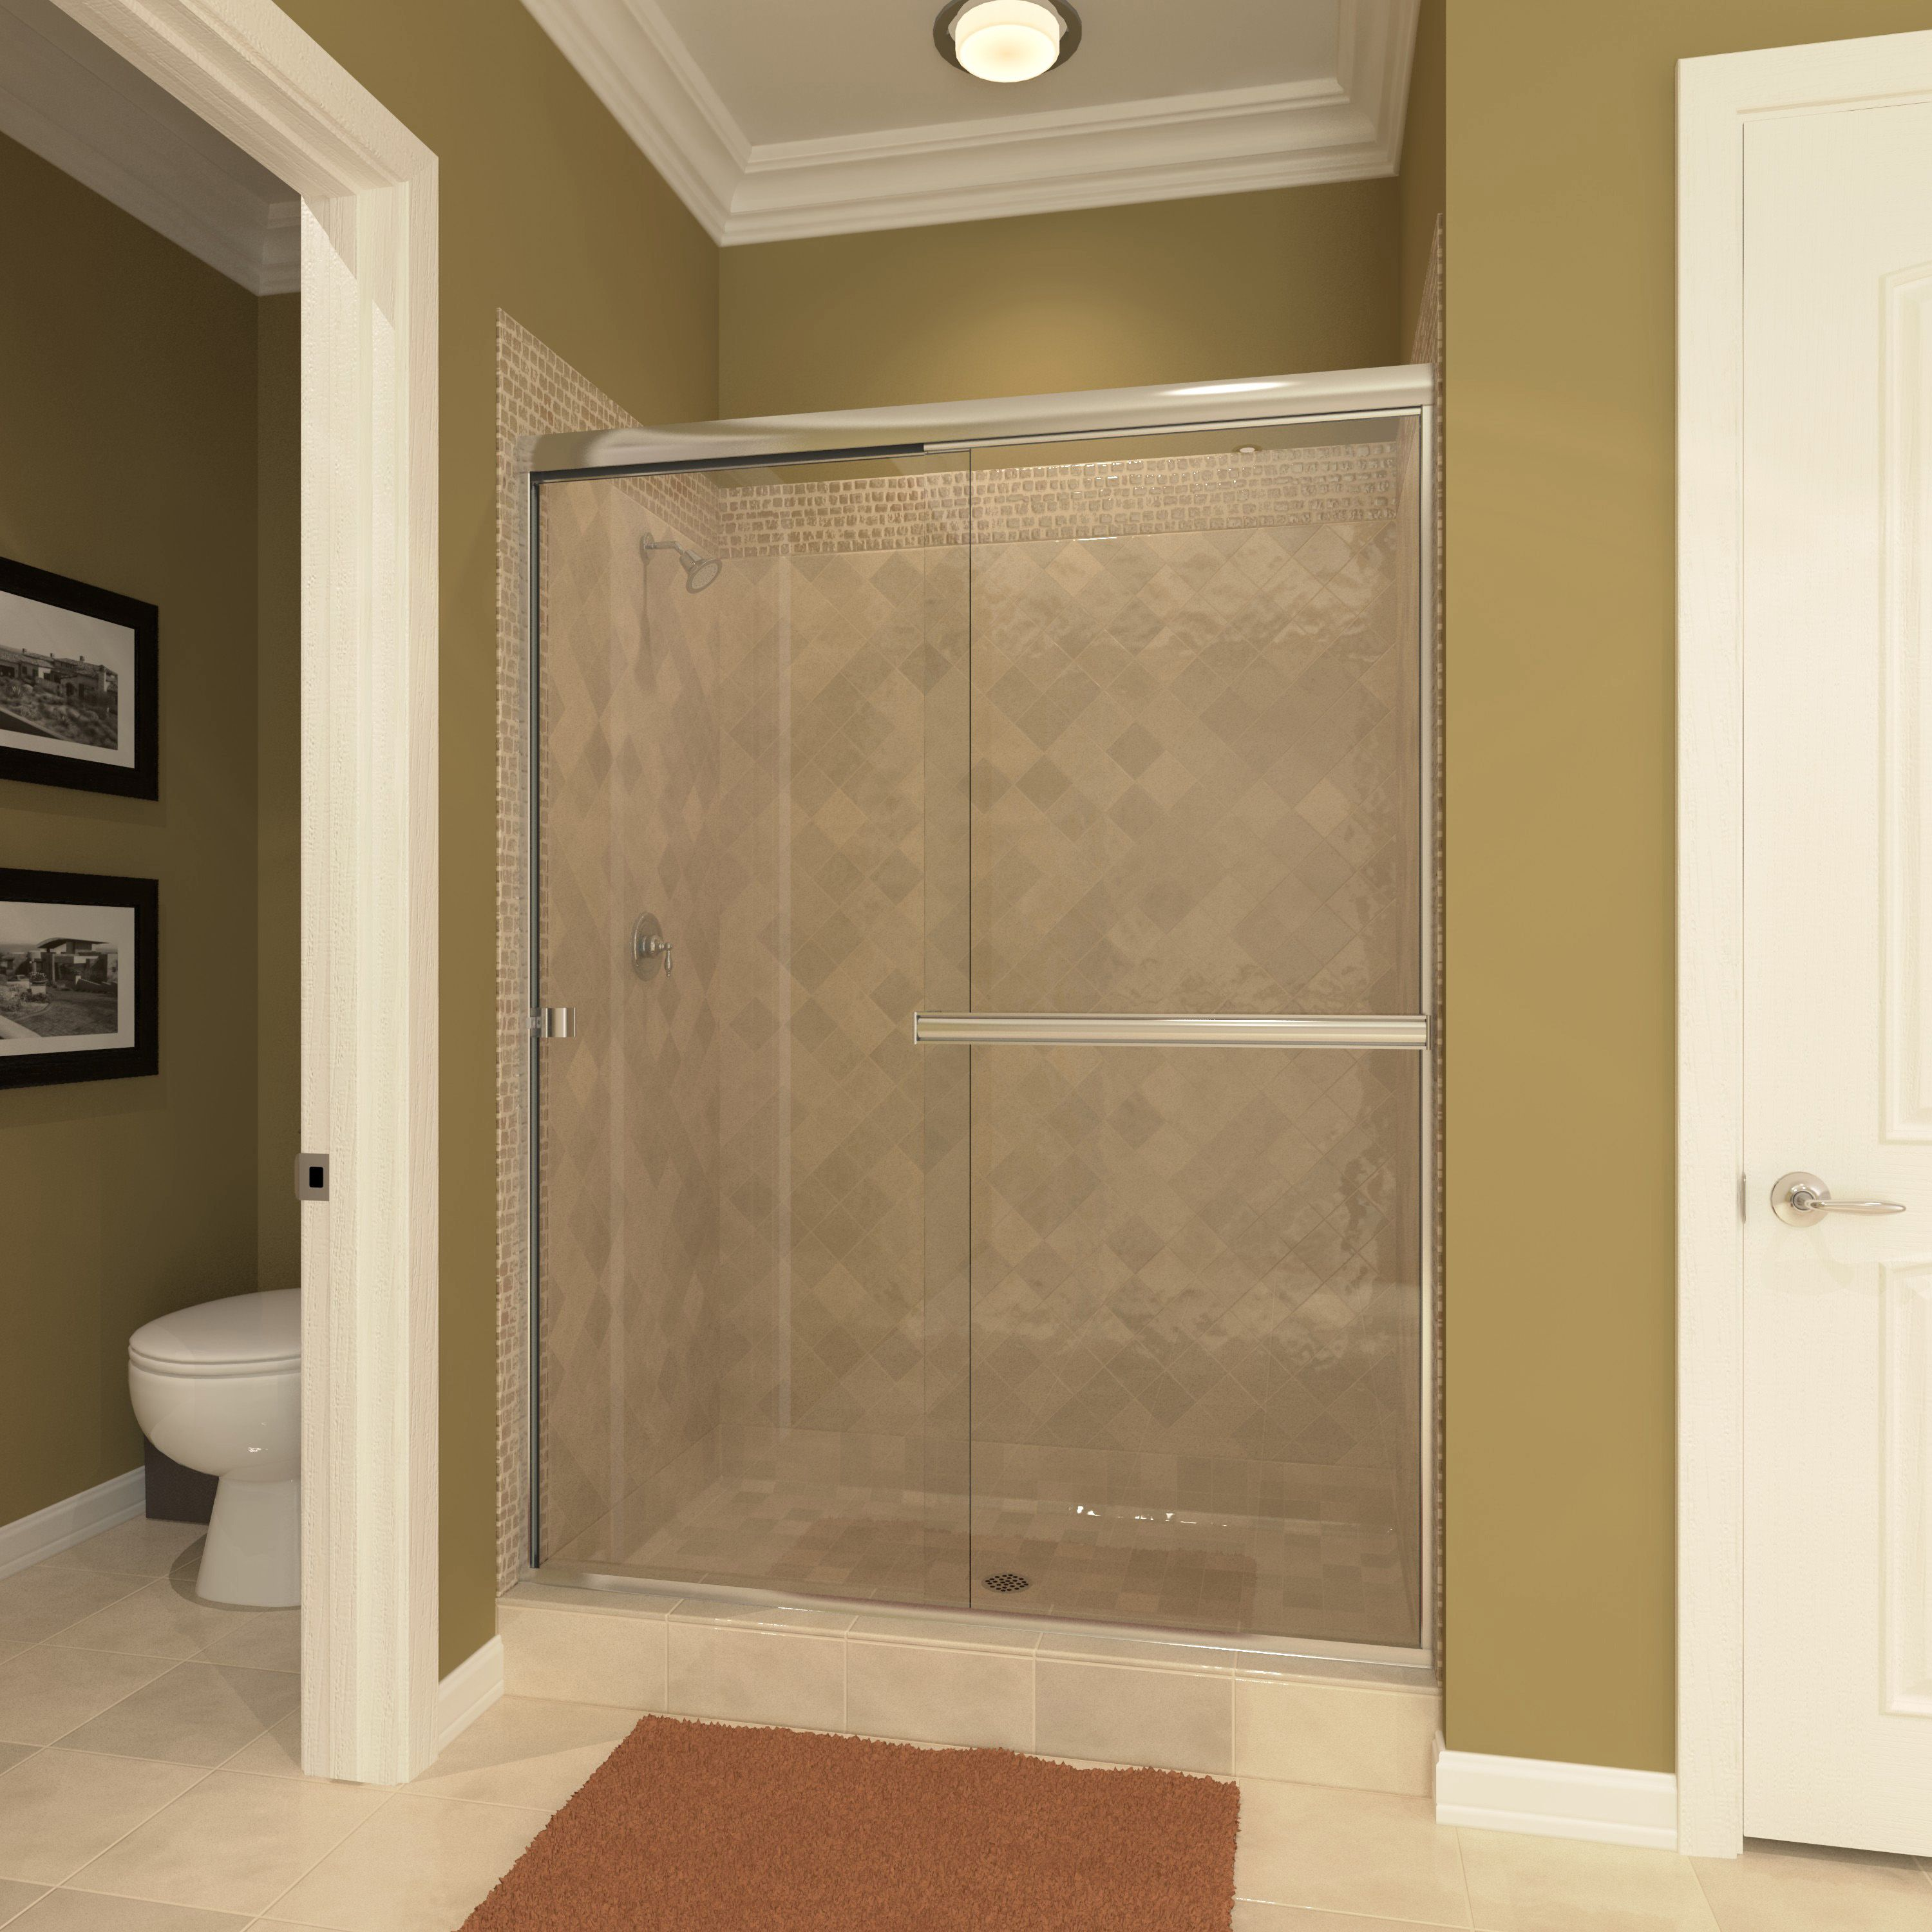 The Traditional Series shower enclosure is a precision engineered good quality frameless enclosure at an affordable price. The extrusions are bright dipped ... & The Light Euro Tub and Shower enclosures offer a European designer ...